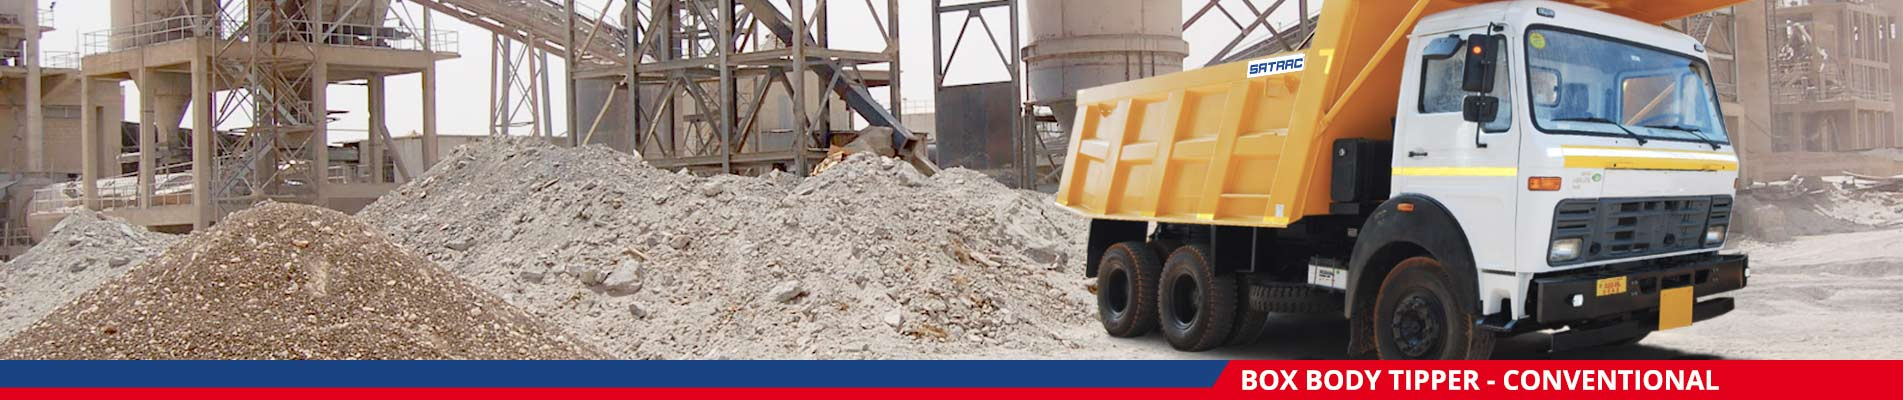 Box Body Tipper Conventional Manufacturers in India